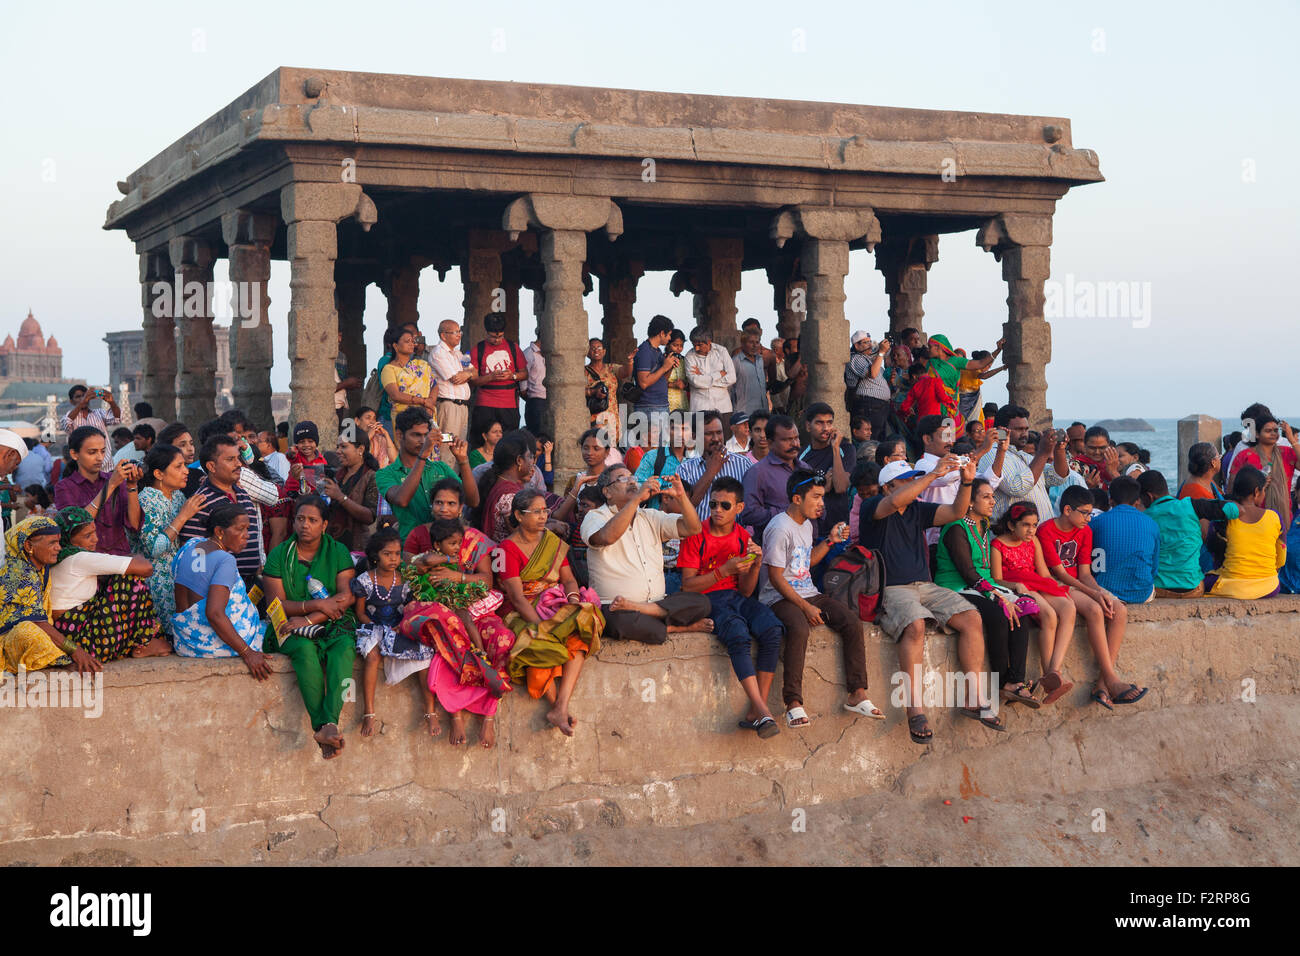 Pilgrims and devotees watch and take photographs from a temple as the sun sets at Kanyakumari - Stock Image